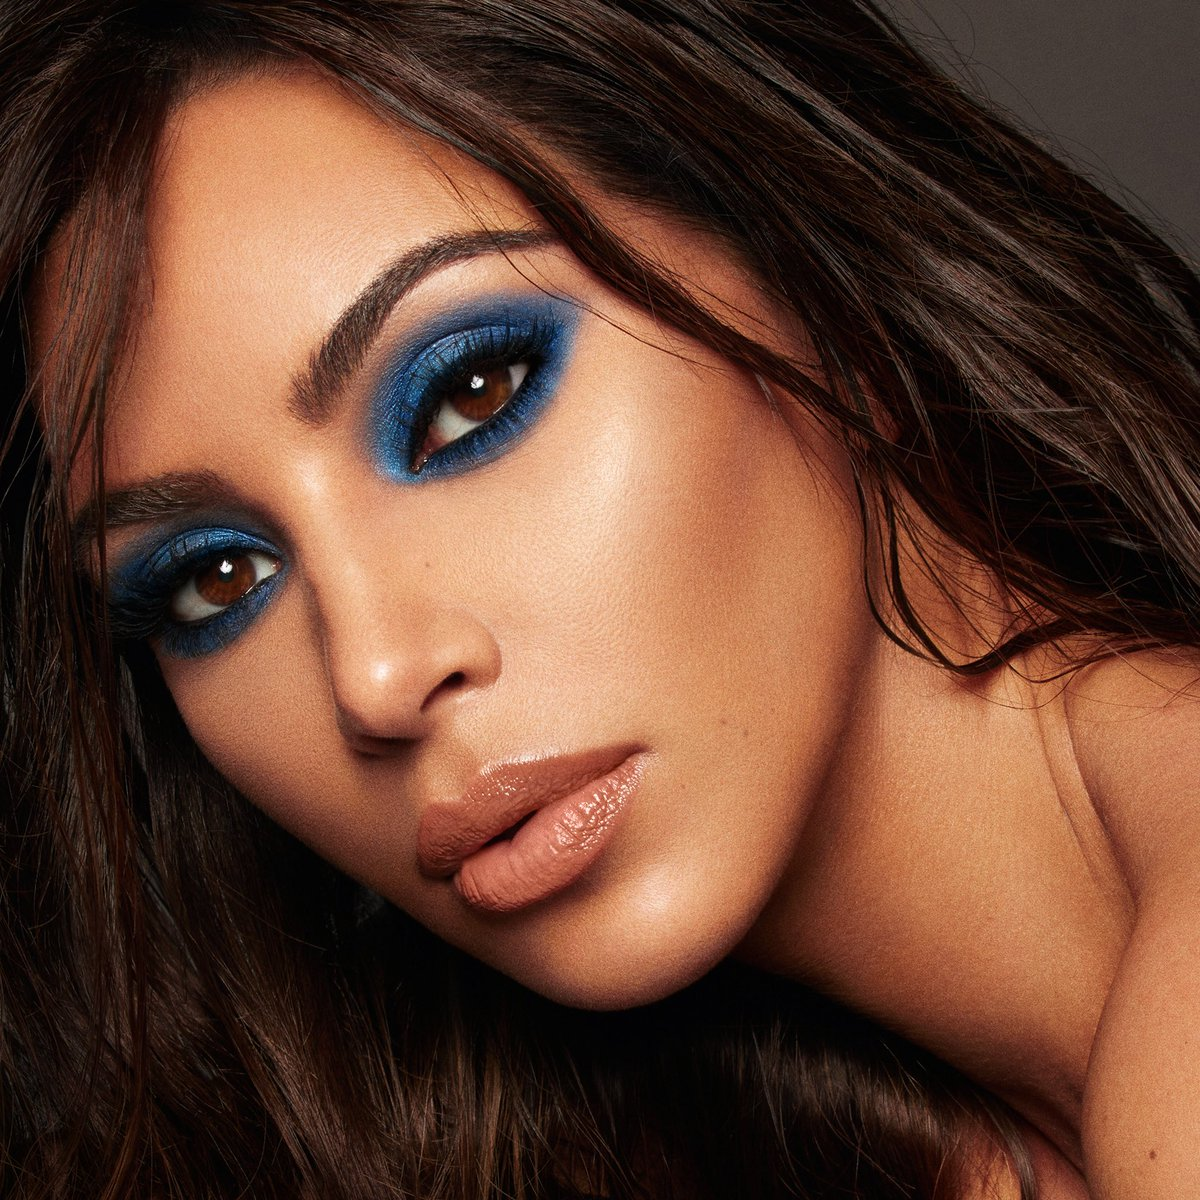 RT @kkwbeauty: #KKWXMARIO will be restocked TODAY at 12PM PST at https://t.co/32qaKbs5YG https://t.co/yUIapLRCu5